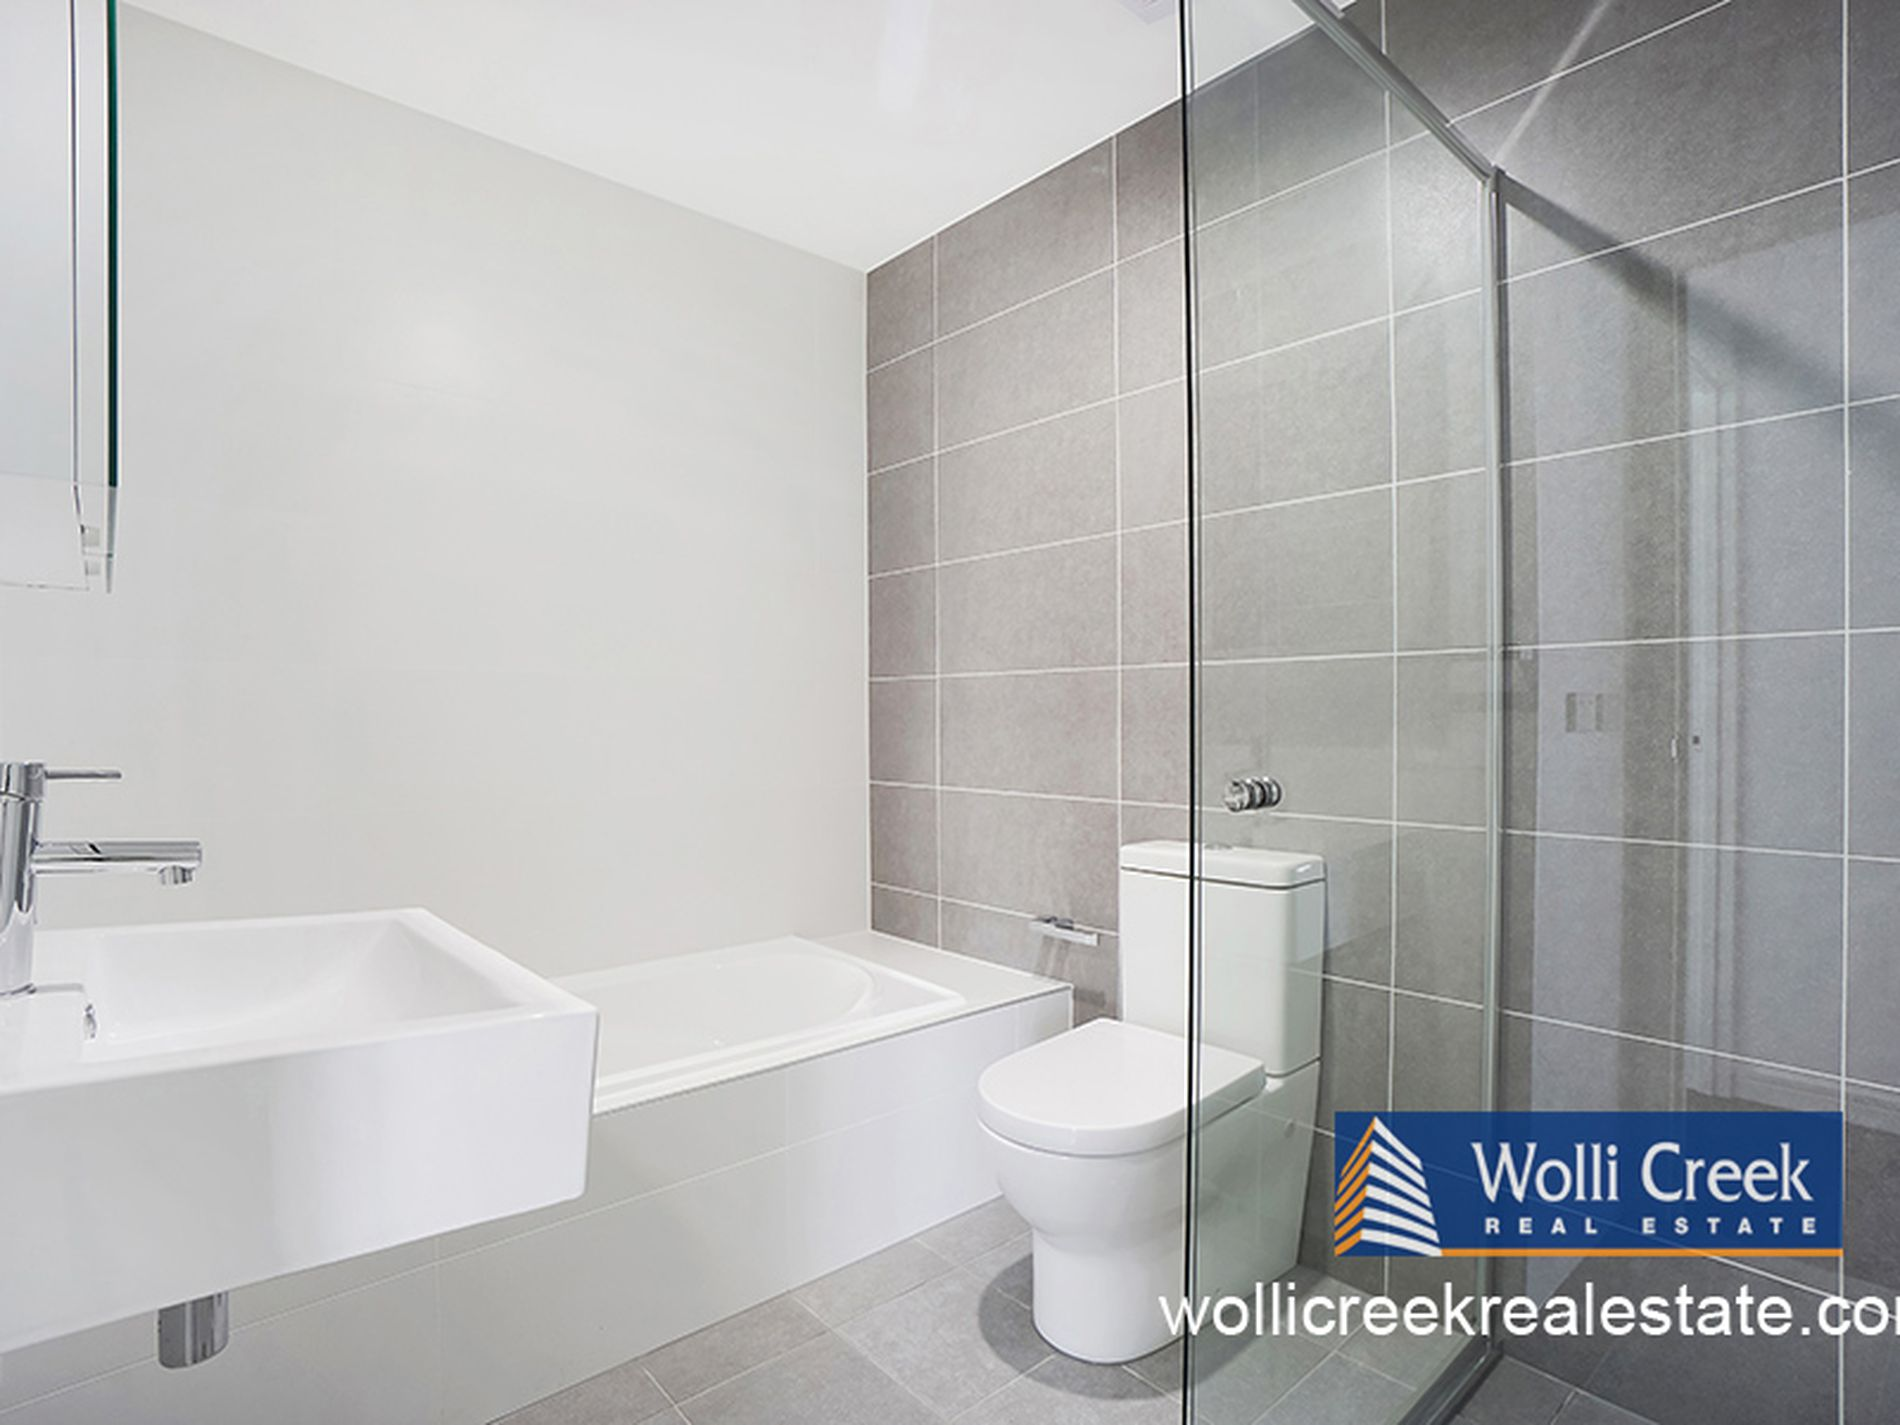 123 / C1-5 Gertrude Street, Wolli Creek